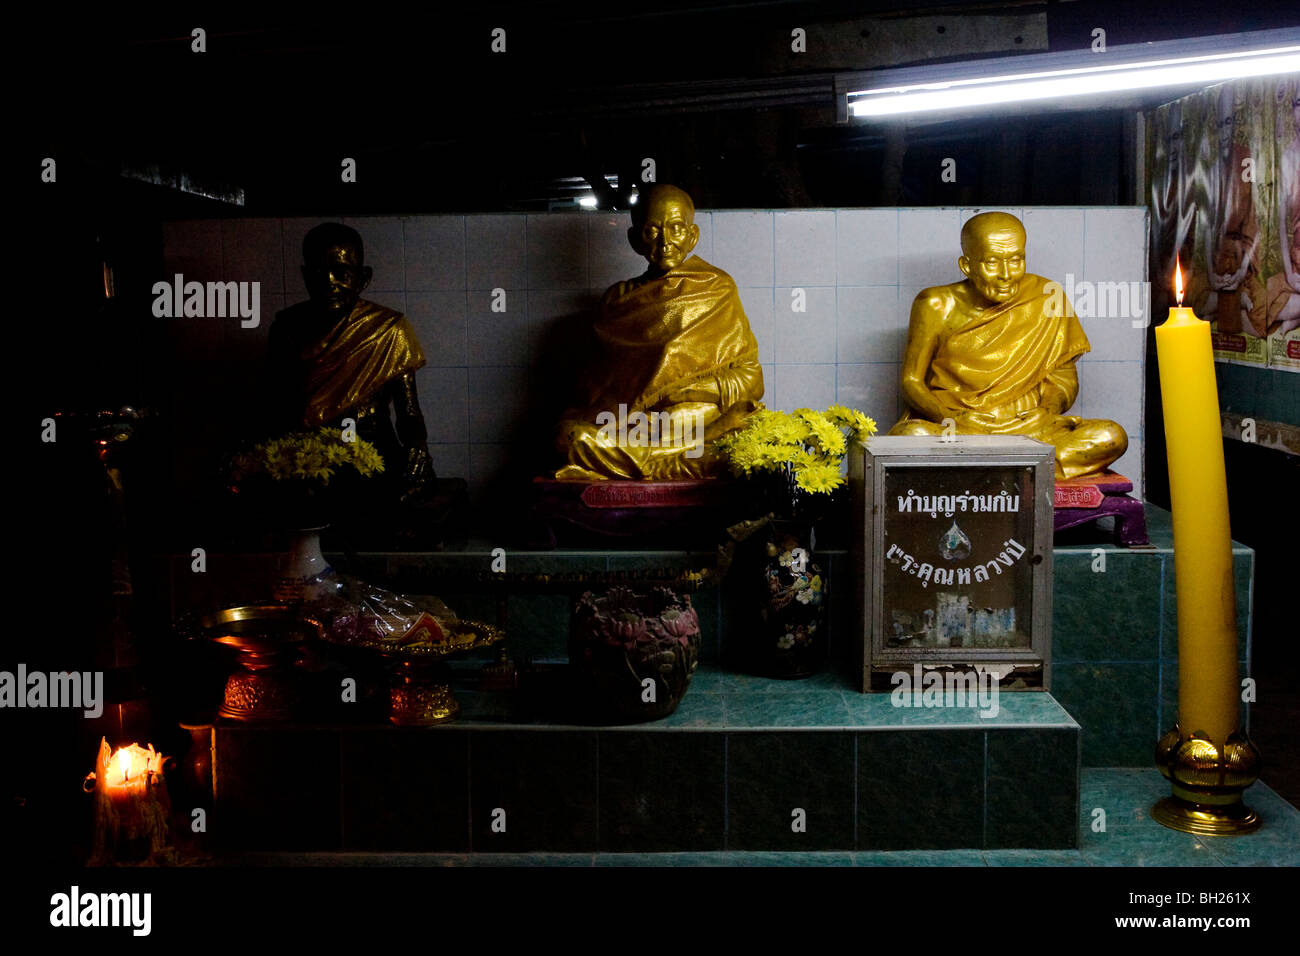 Statues of revered monks on a shrine at Wat Klang Si Chaloensuk, Thailand - Stock Image